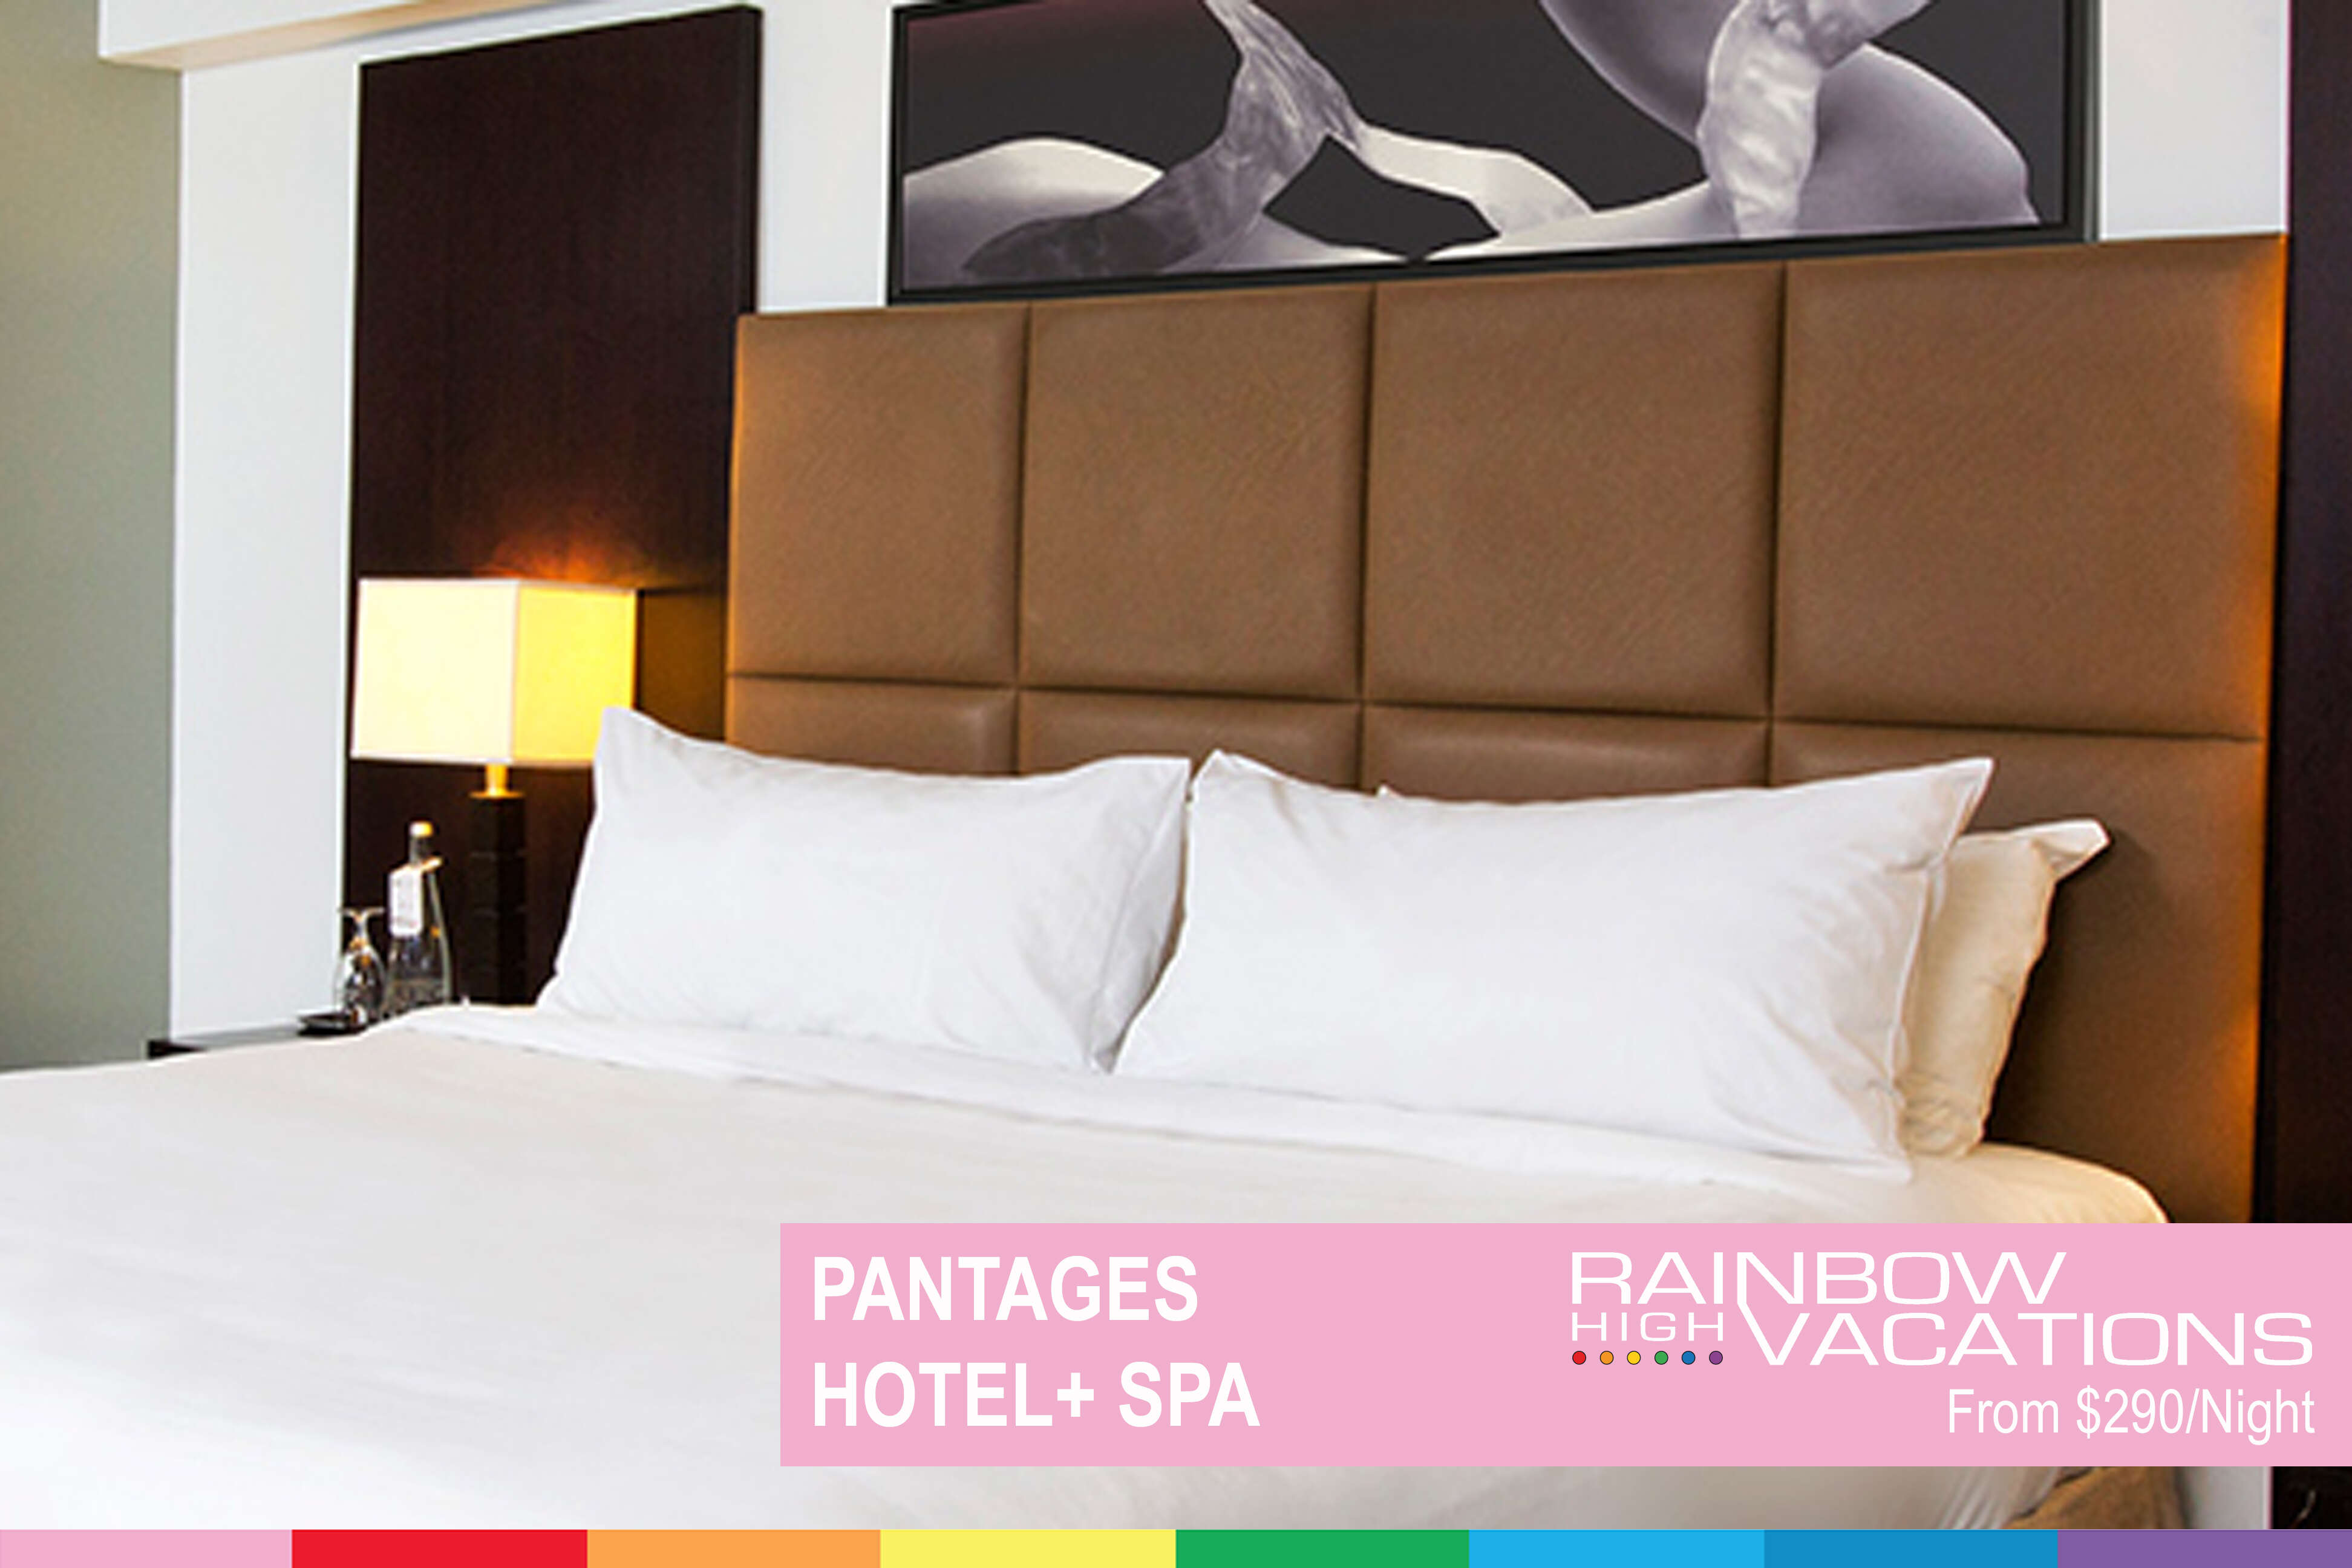 PANTAGES HOTEL & SPA